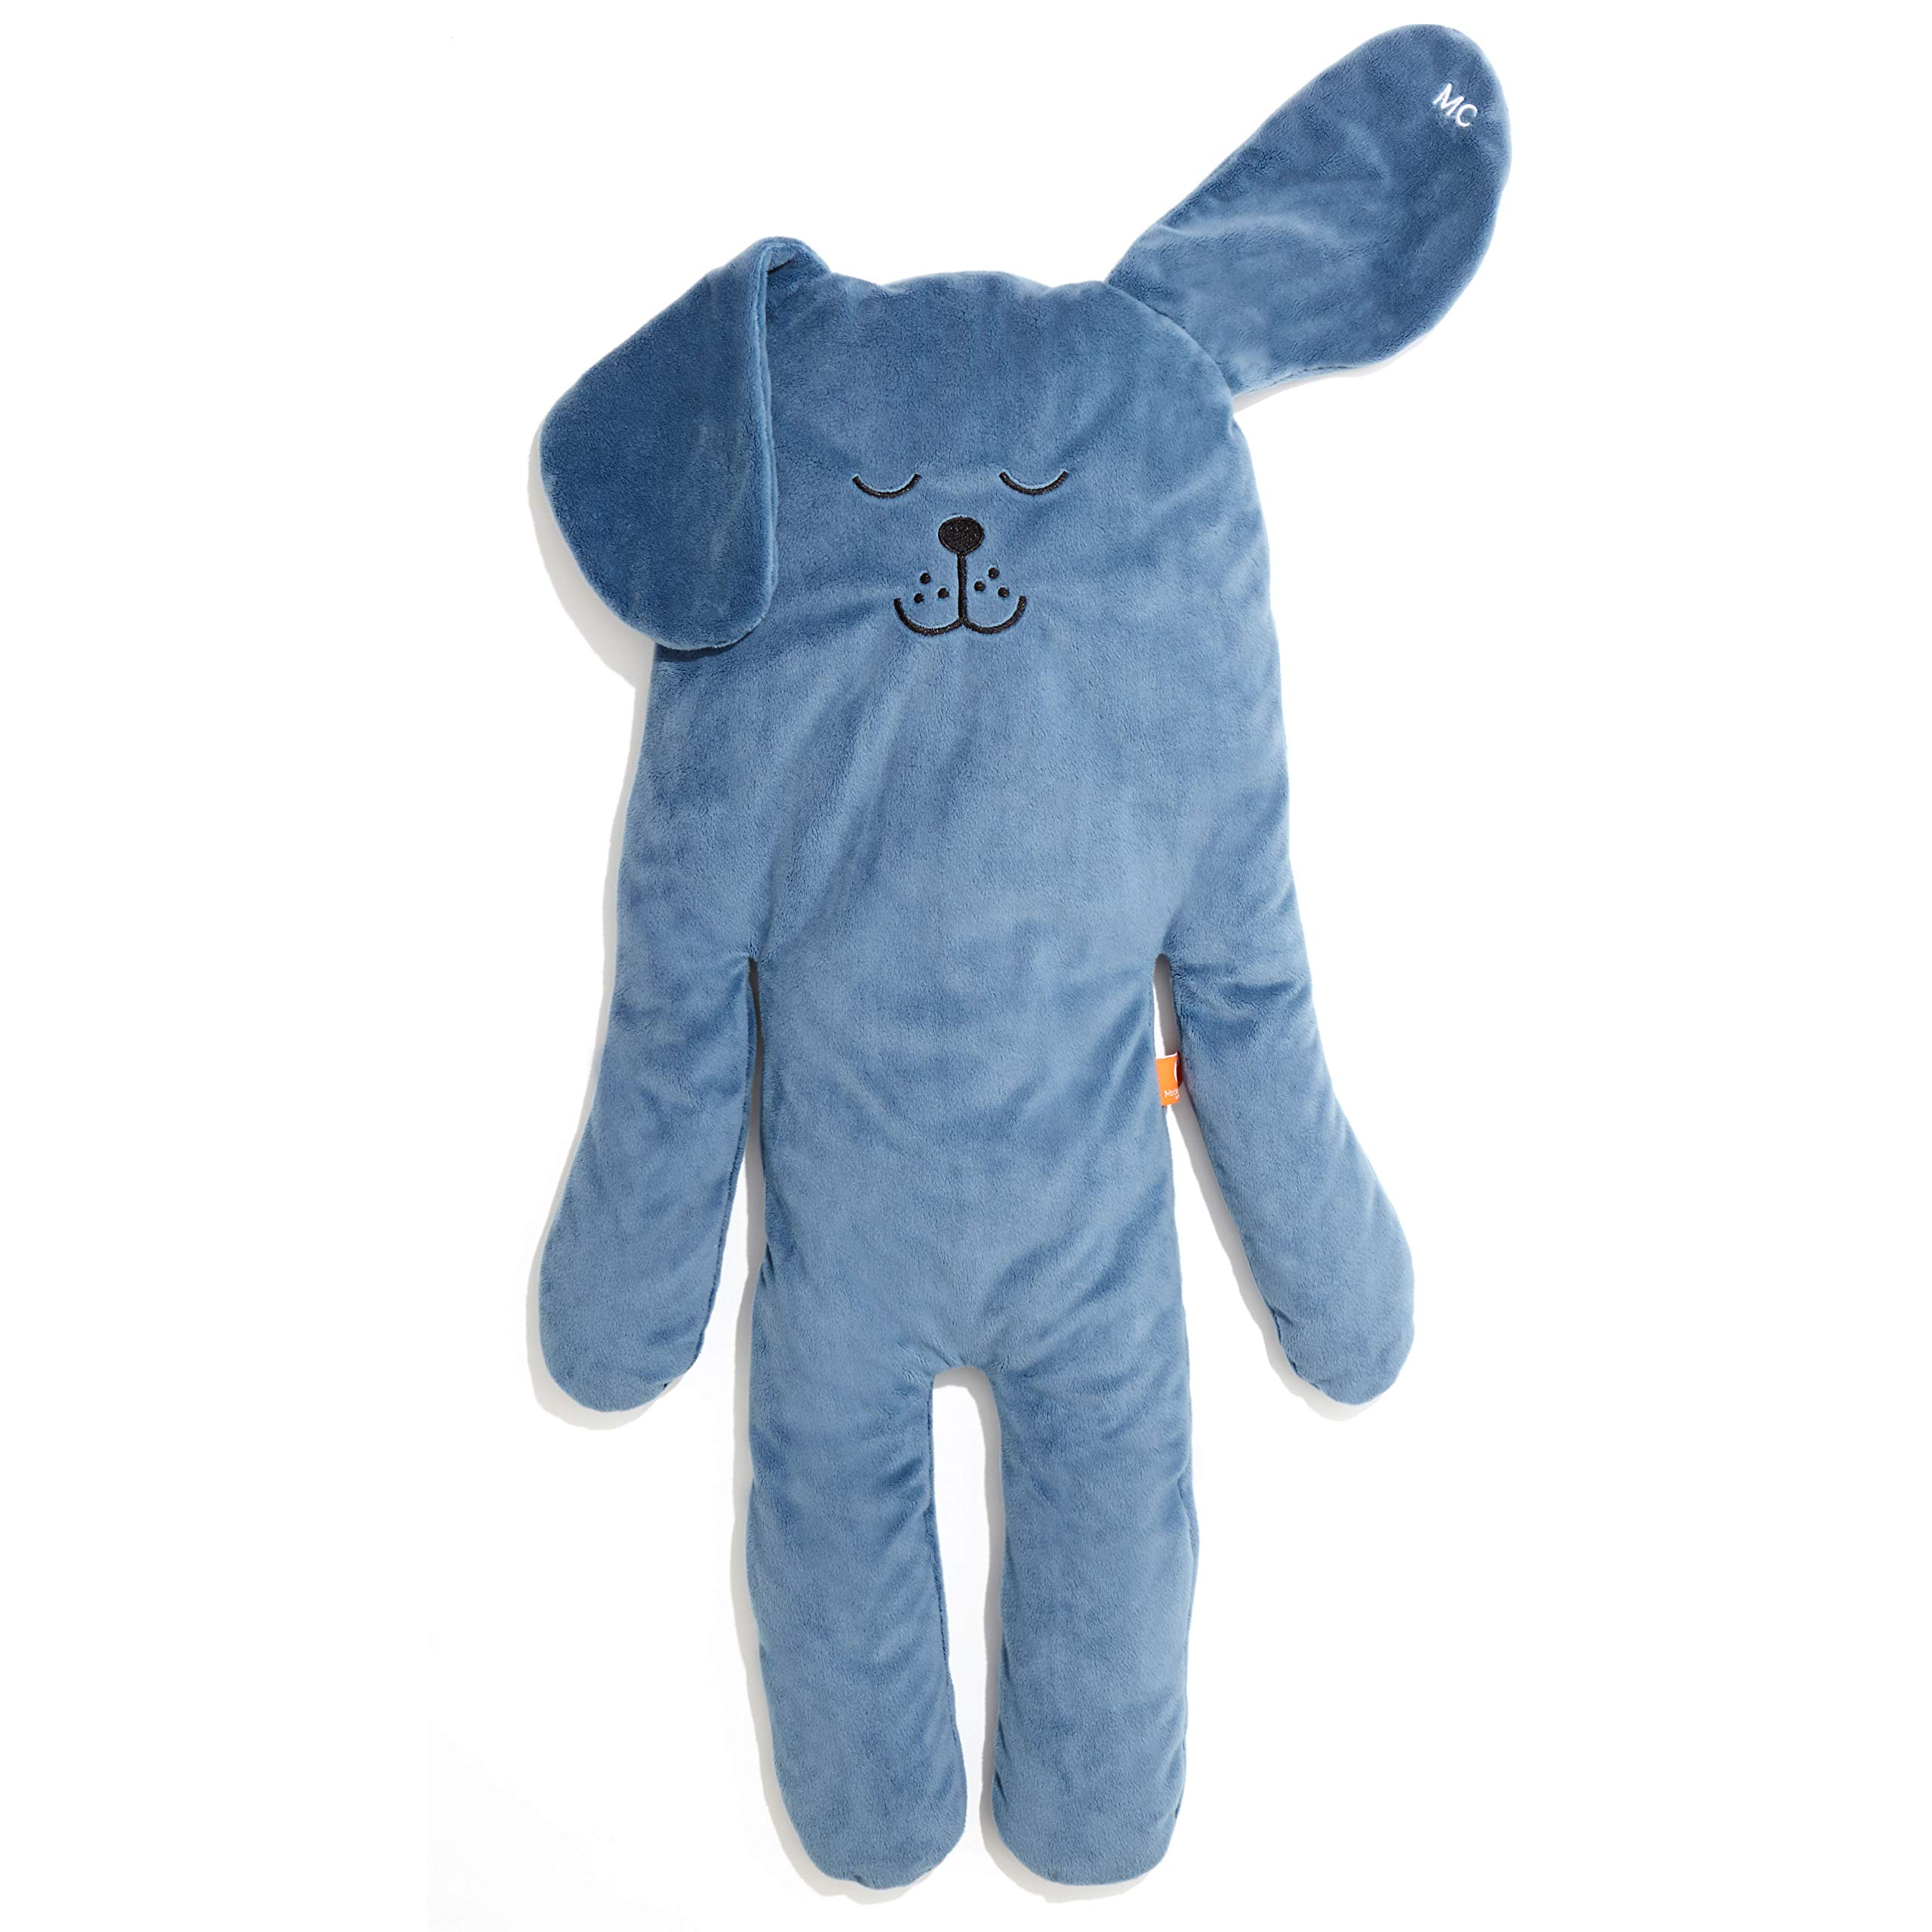 MODERN CUDDLE Cozy Minky Faux Down Stuffed Animal Body Pillow Plush Lovie 32'' Puppy Denim Blue Pet | Toddler and Kids Relaxing Soft Calming Toy | Unique Birthday Gift by MODERN CUDDLE